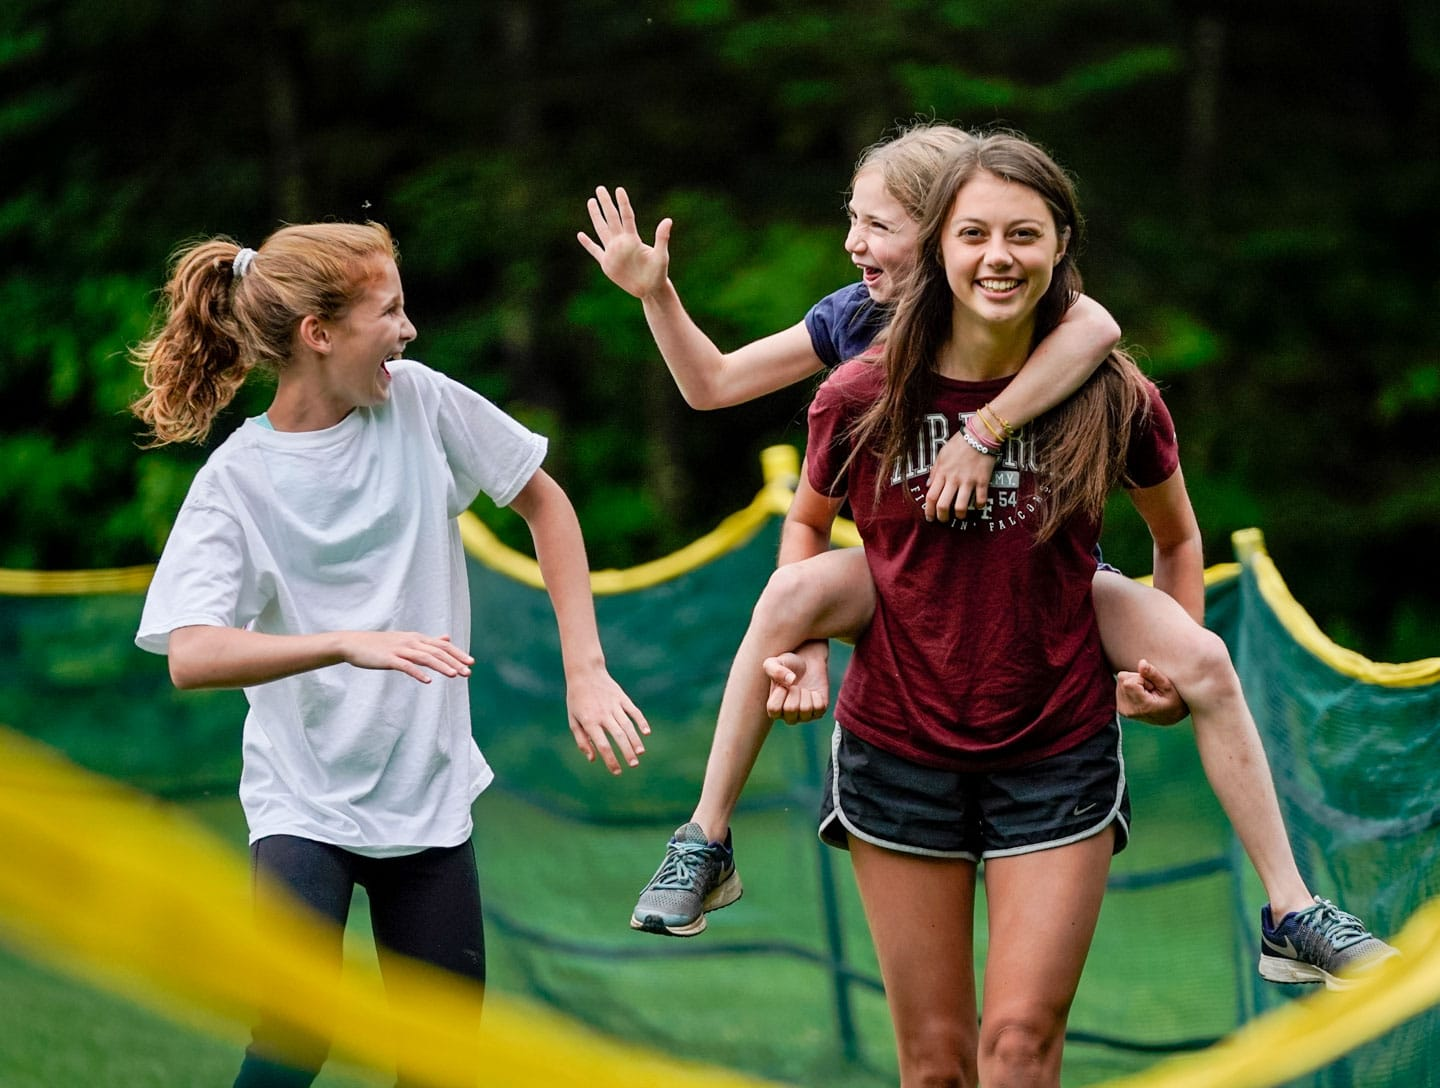 pretty camp counselor giving kid a piggy back ride while they high five another girl